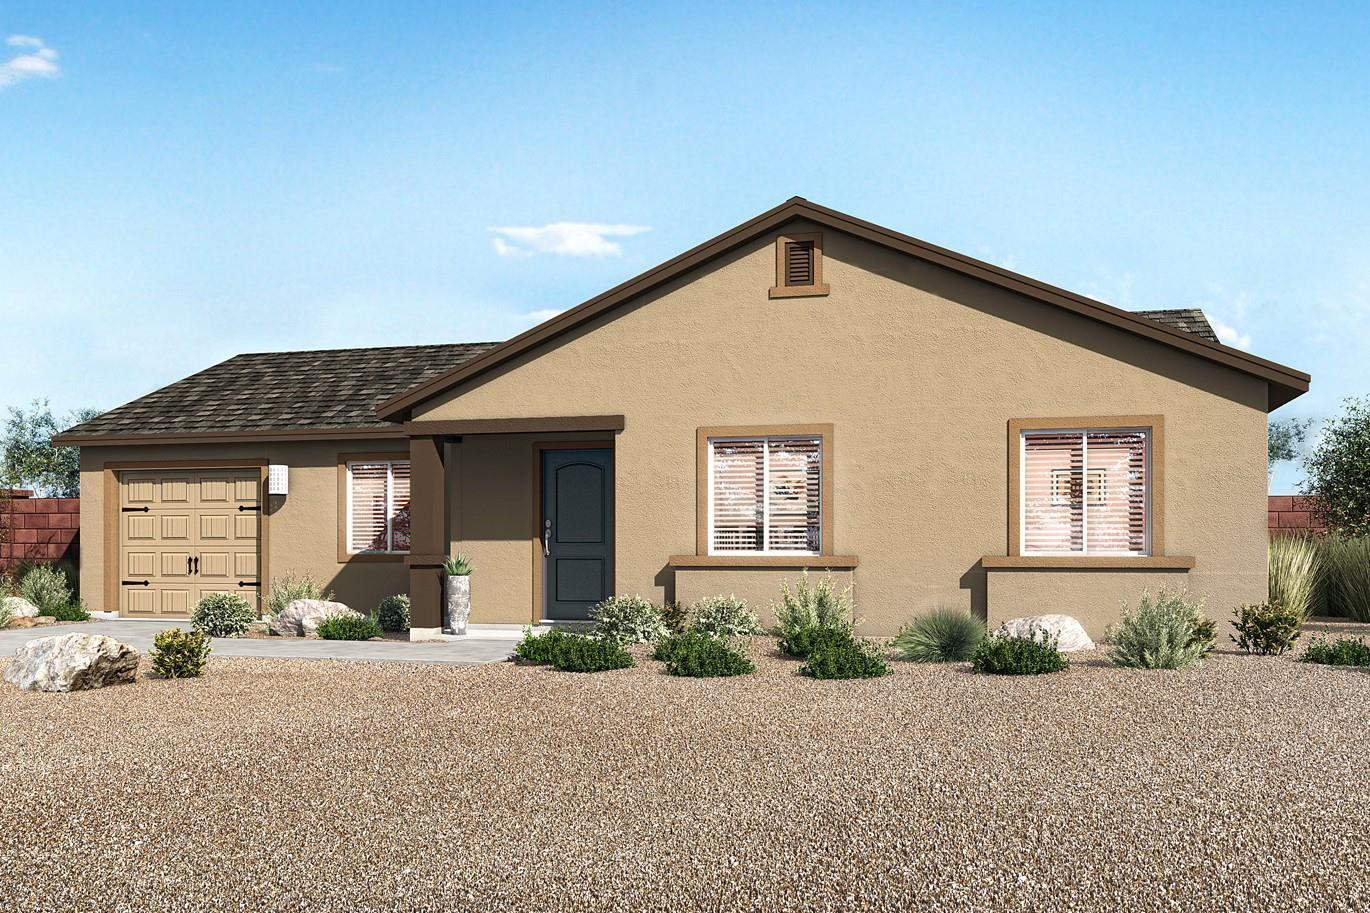 The Alamo by LGI Homes:Spacious 3-bedroom home with walk-in closet